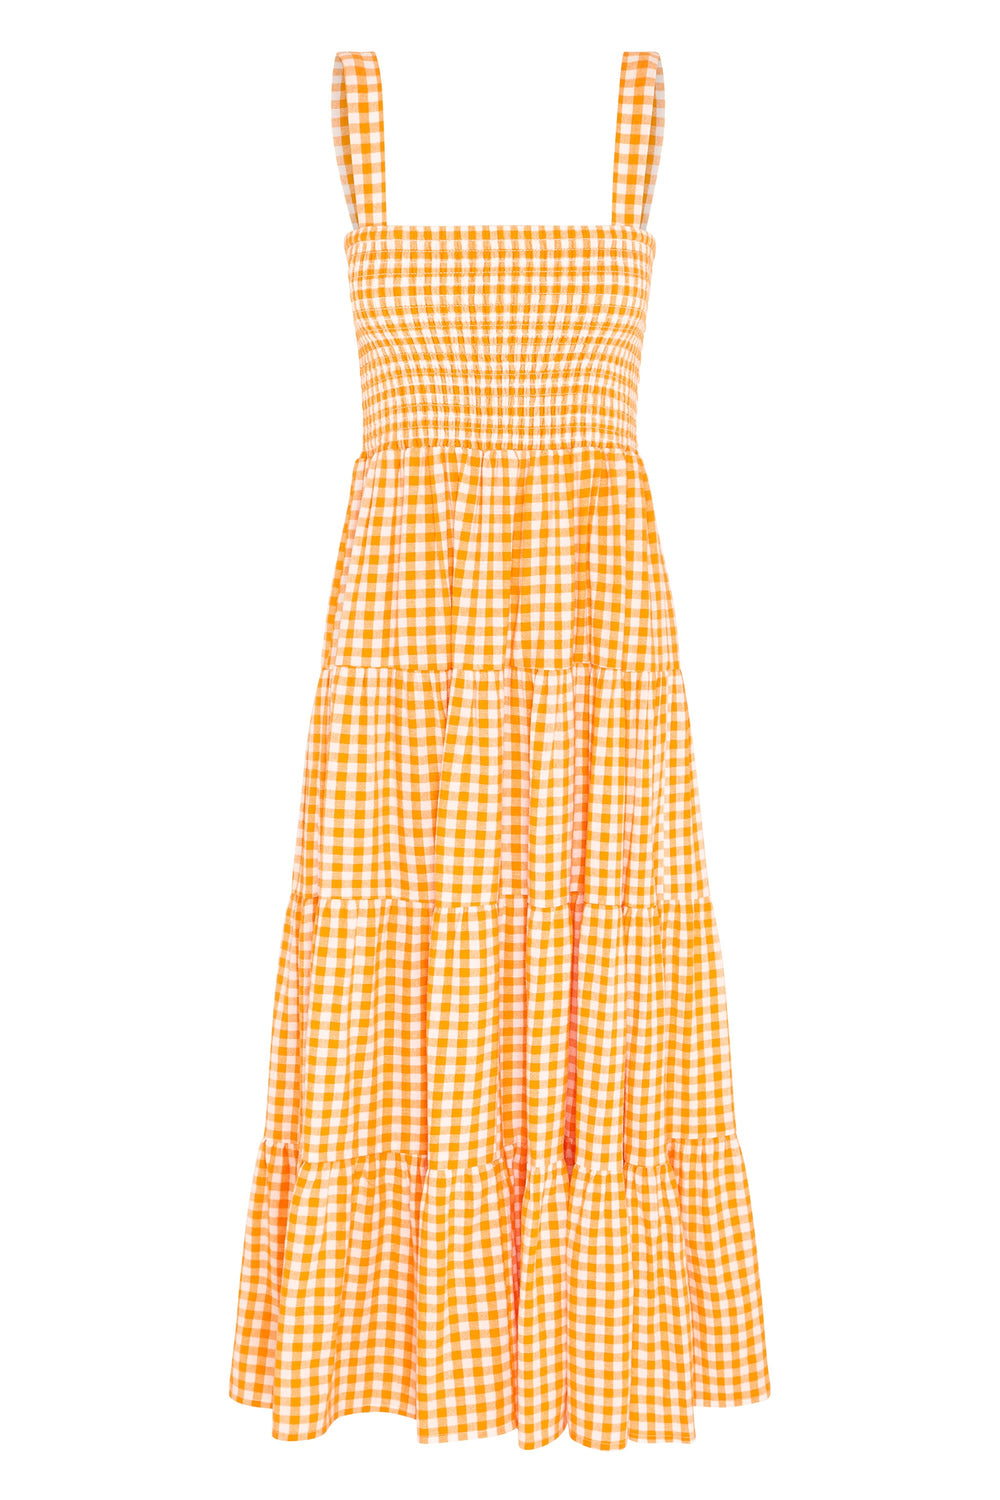 Savannah Dress In Apricot Gingham